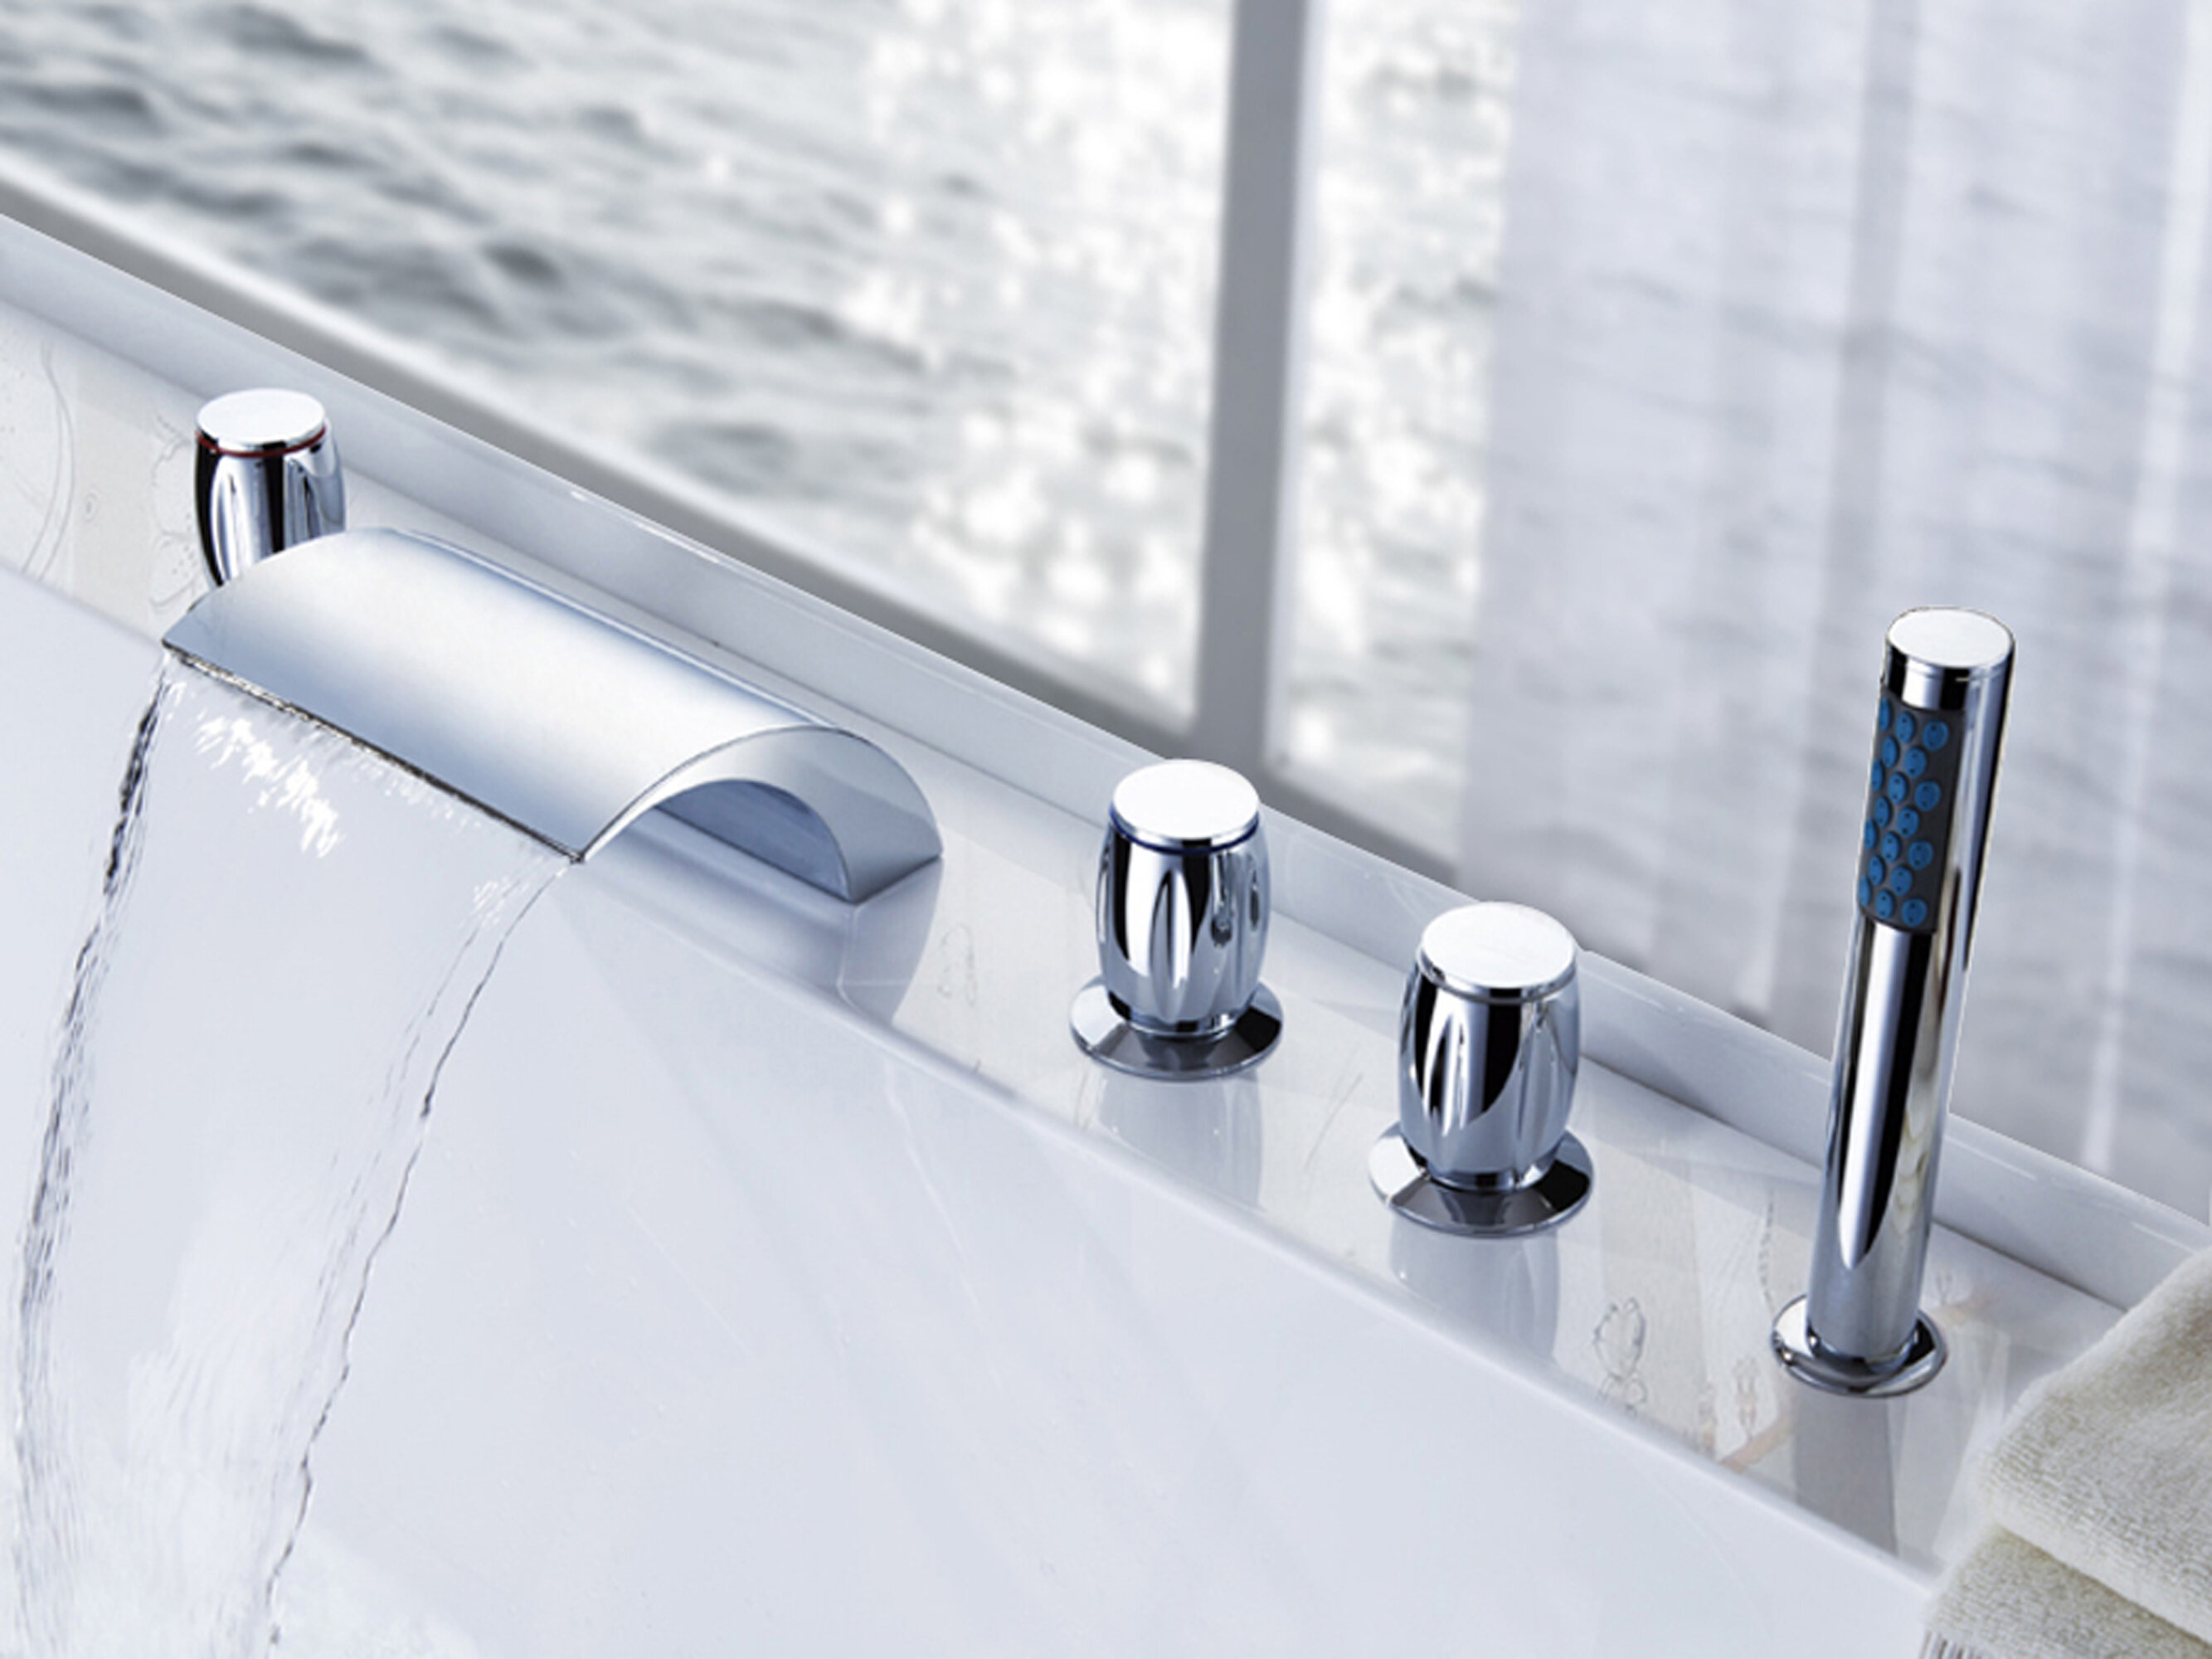 Sumerain Contemporary Modern Triple Handle Deck Mounted Roman Tub Faucet With Diverter And Handshower Wayfair